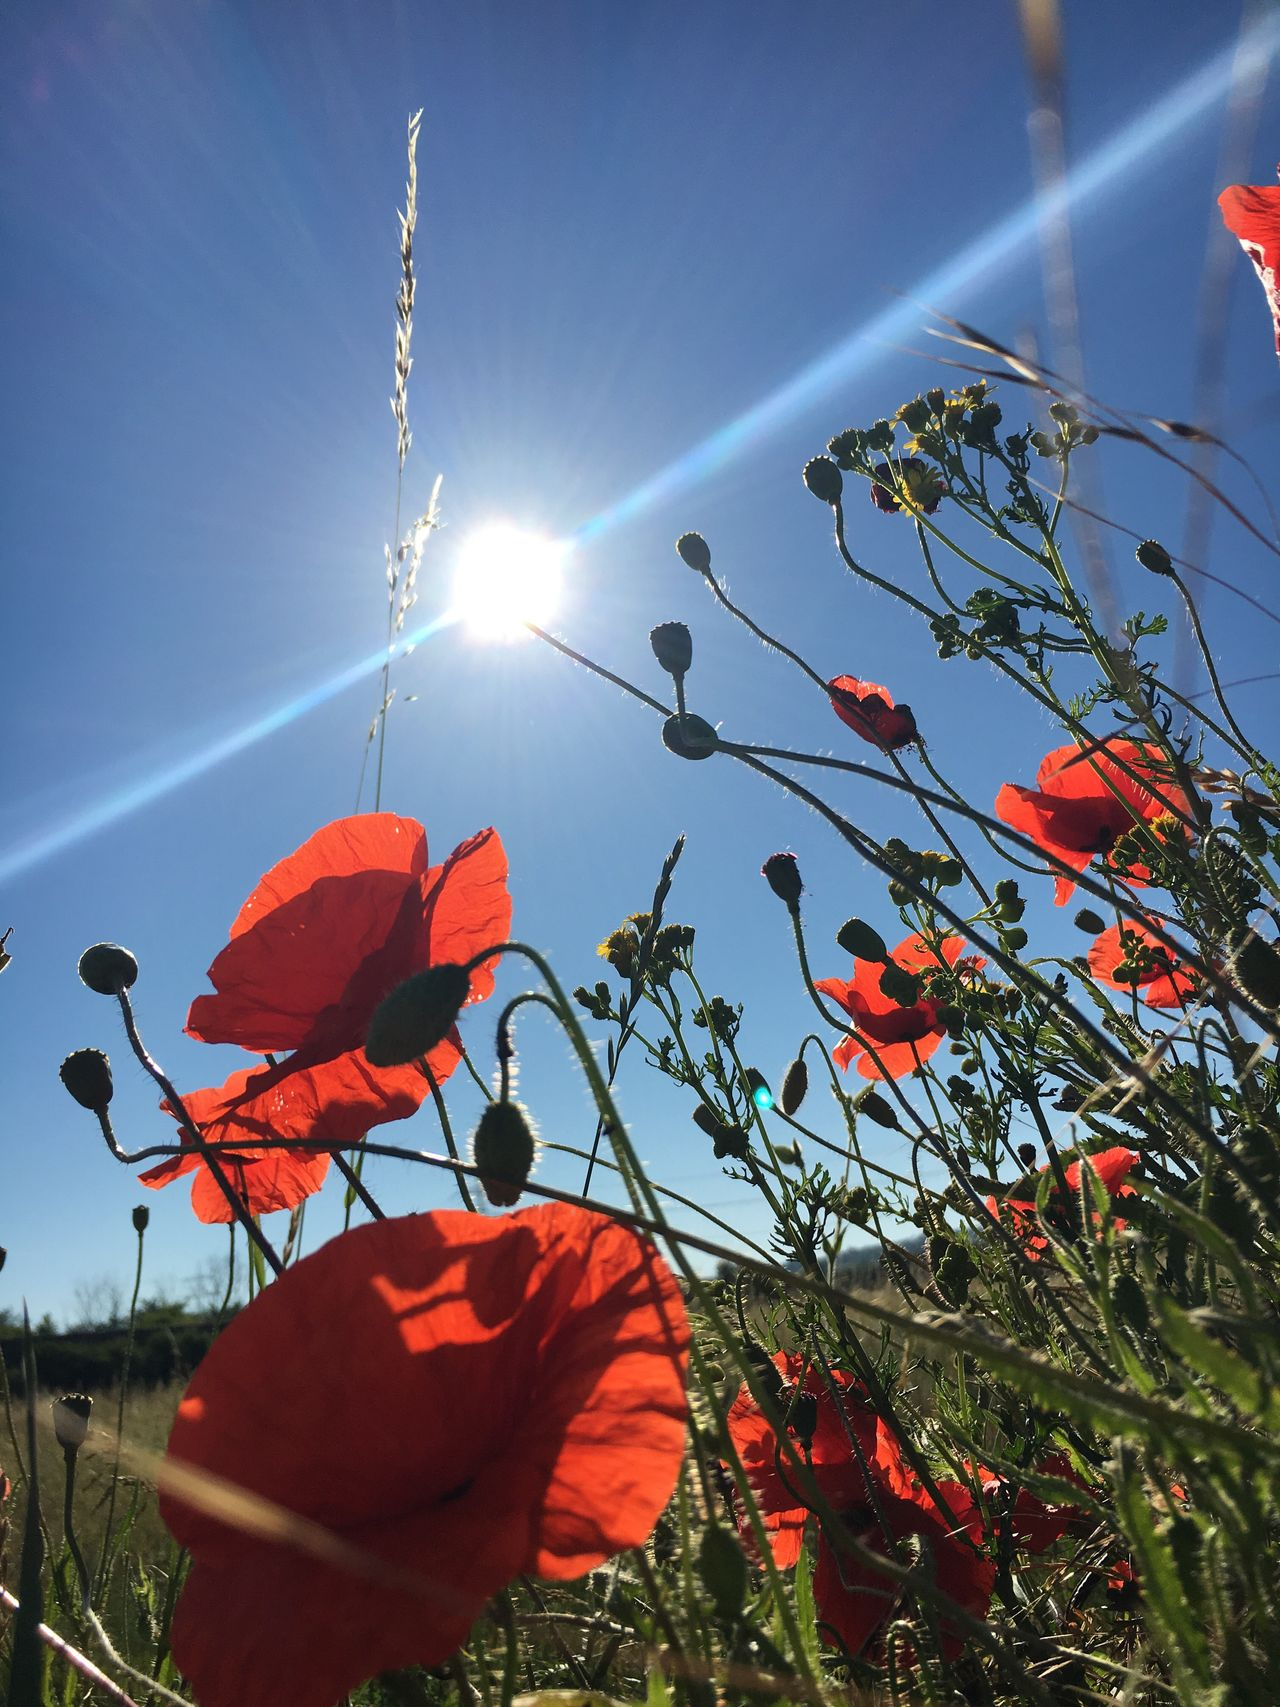 Sun Sunlight Sunbeam Lens Flare Low Angle View Outdoors Day Growth Sky No People Nature Beauty In Nature Plant Clear Sky Flower Freshness Close-up Poppy Poppy Flowers